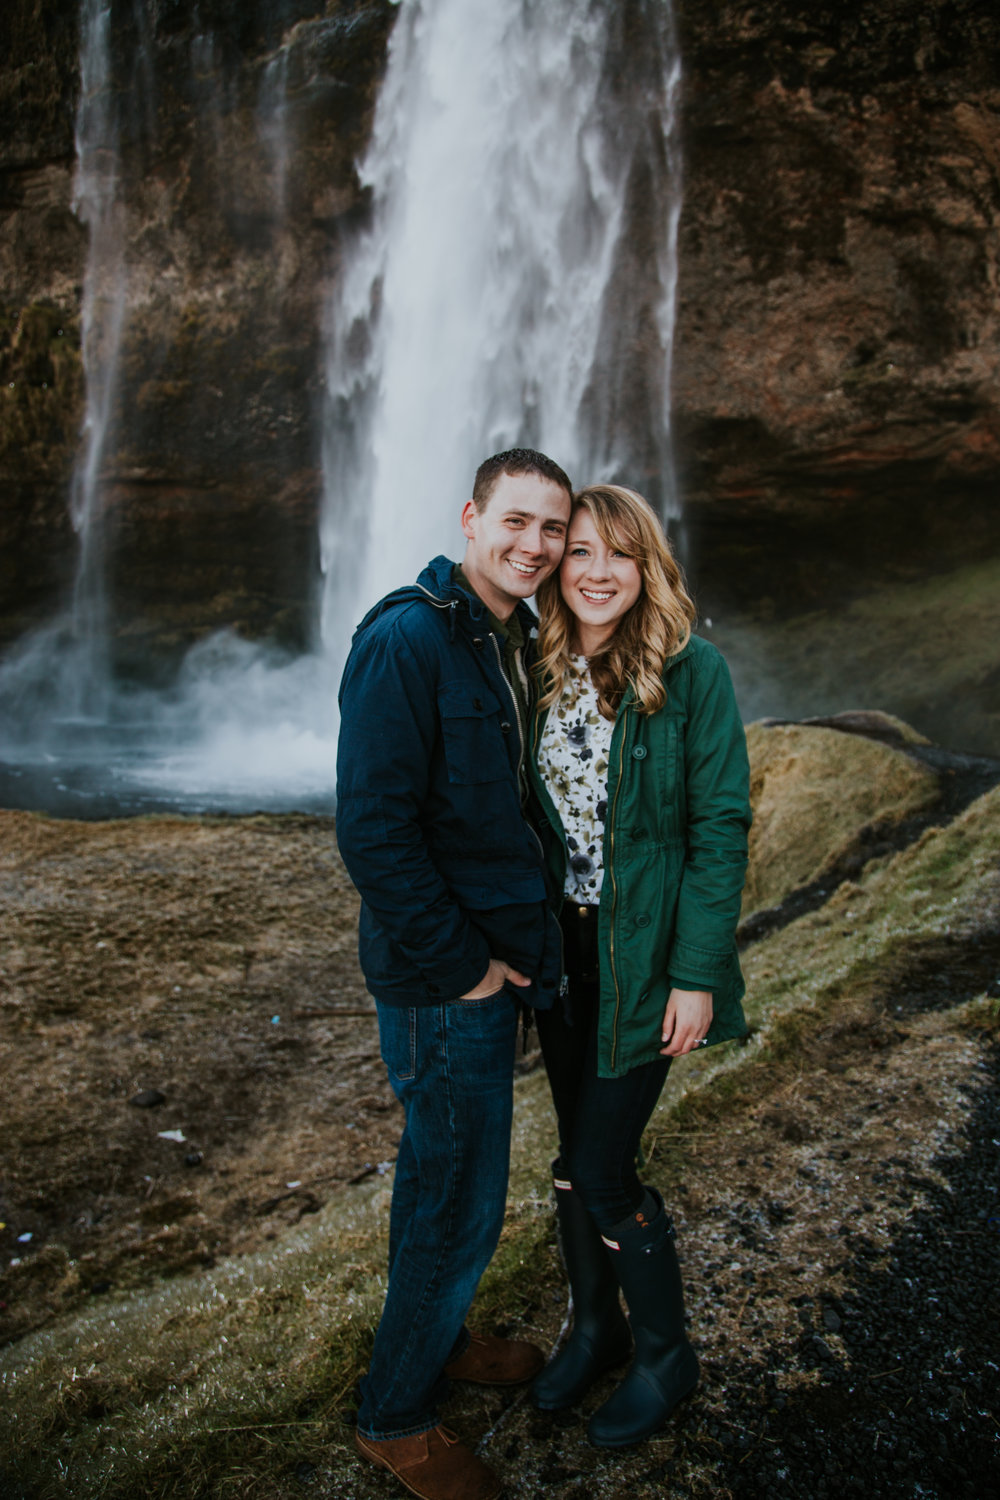 Missy & Kyle - Lo Elledge Photography